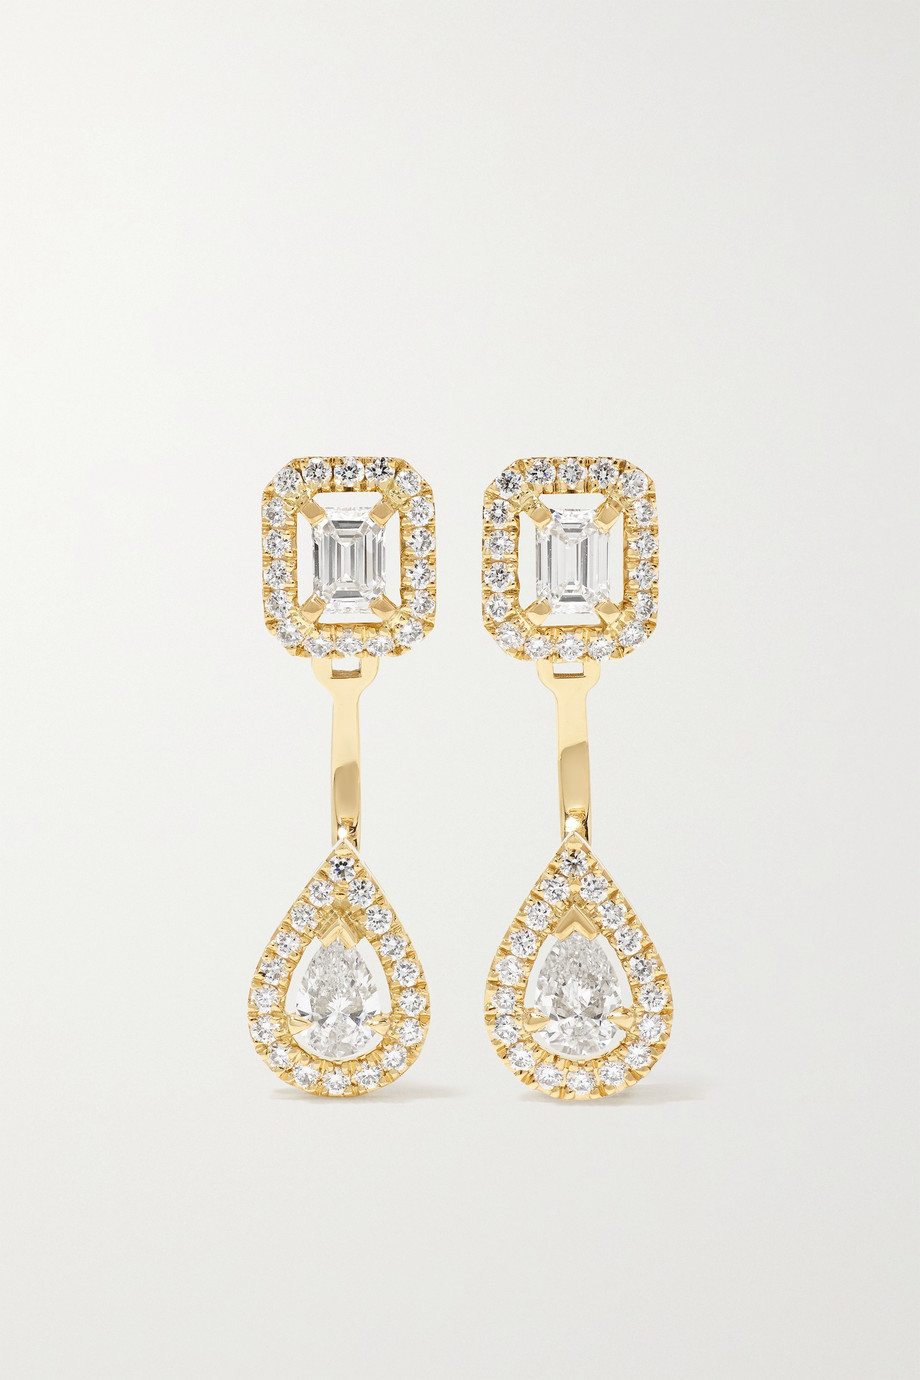 MESSIKA My Twin Toi & Moi 18-karat gold diamond earrings